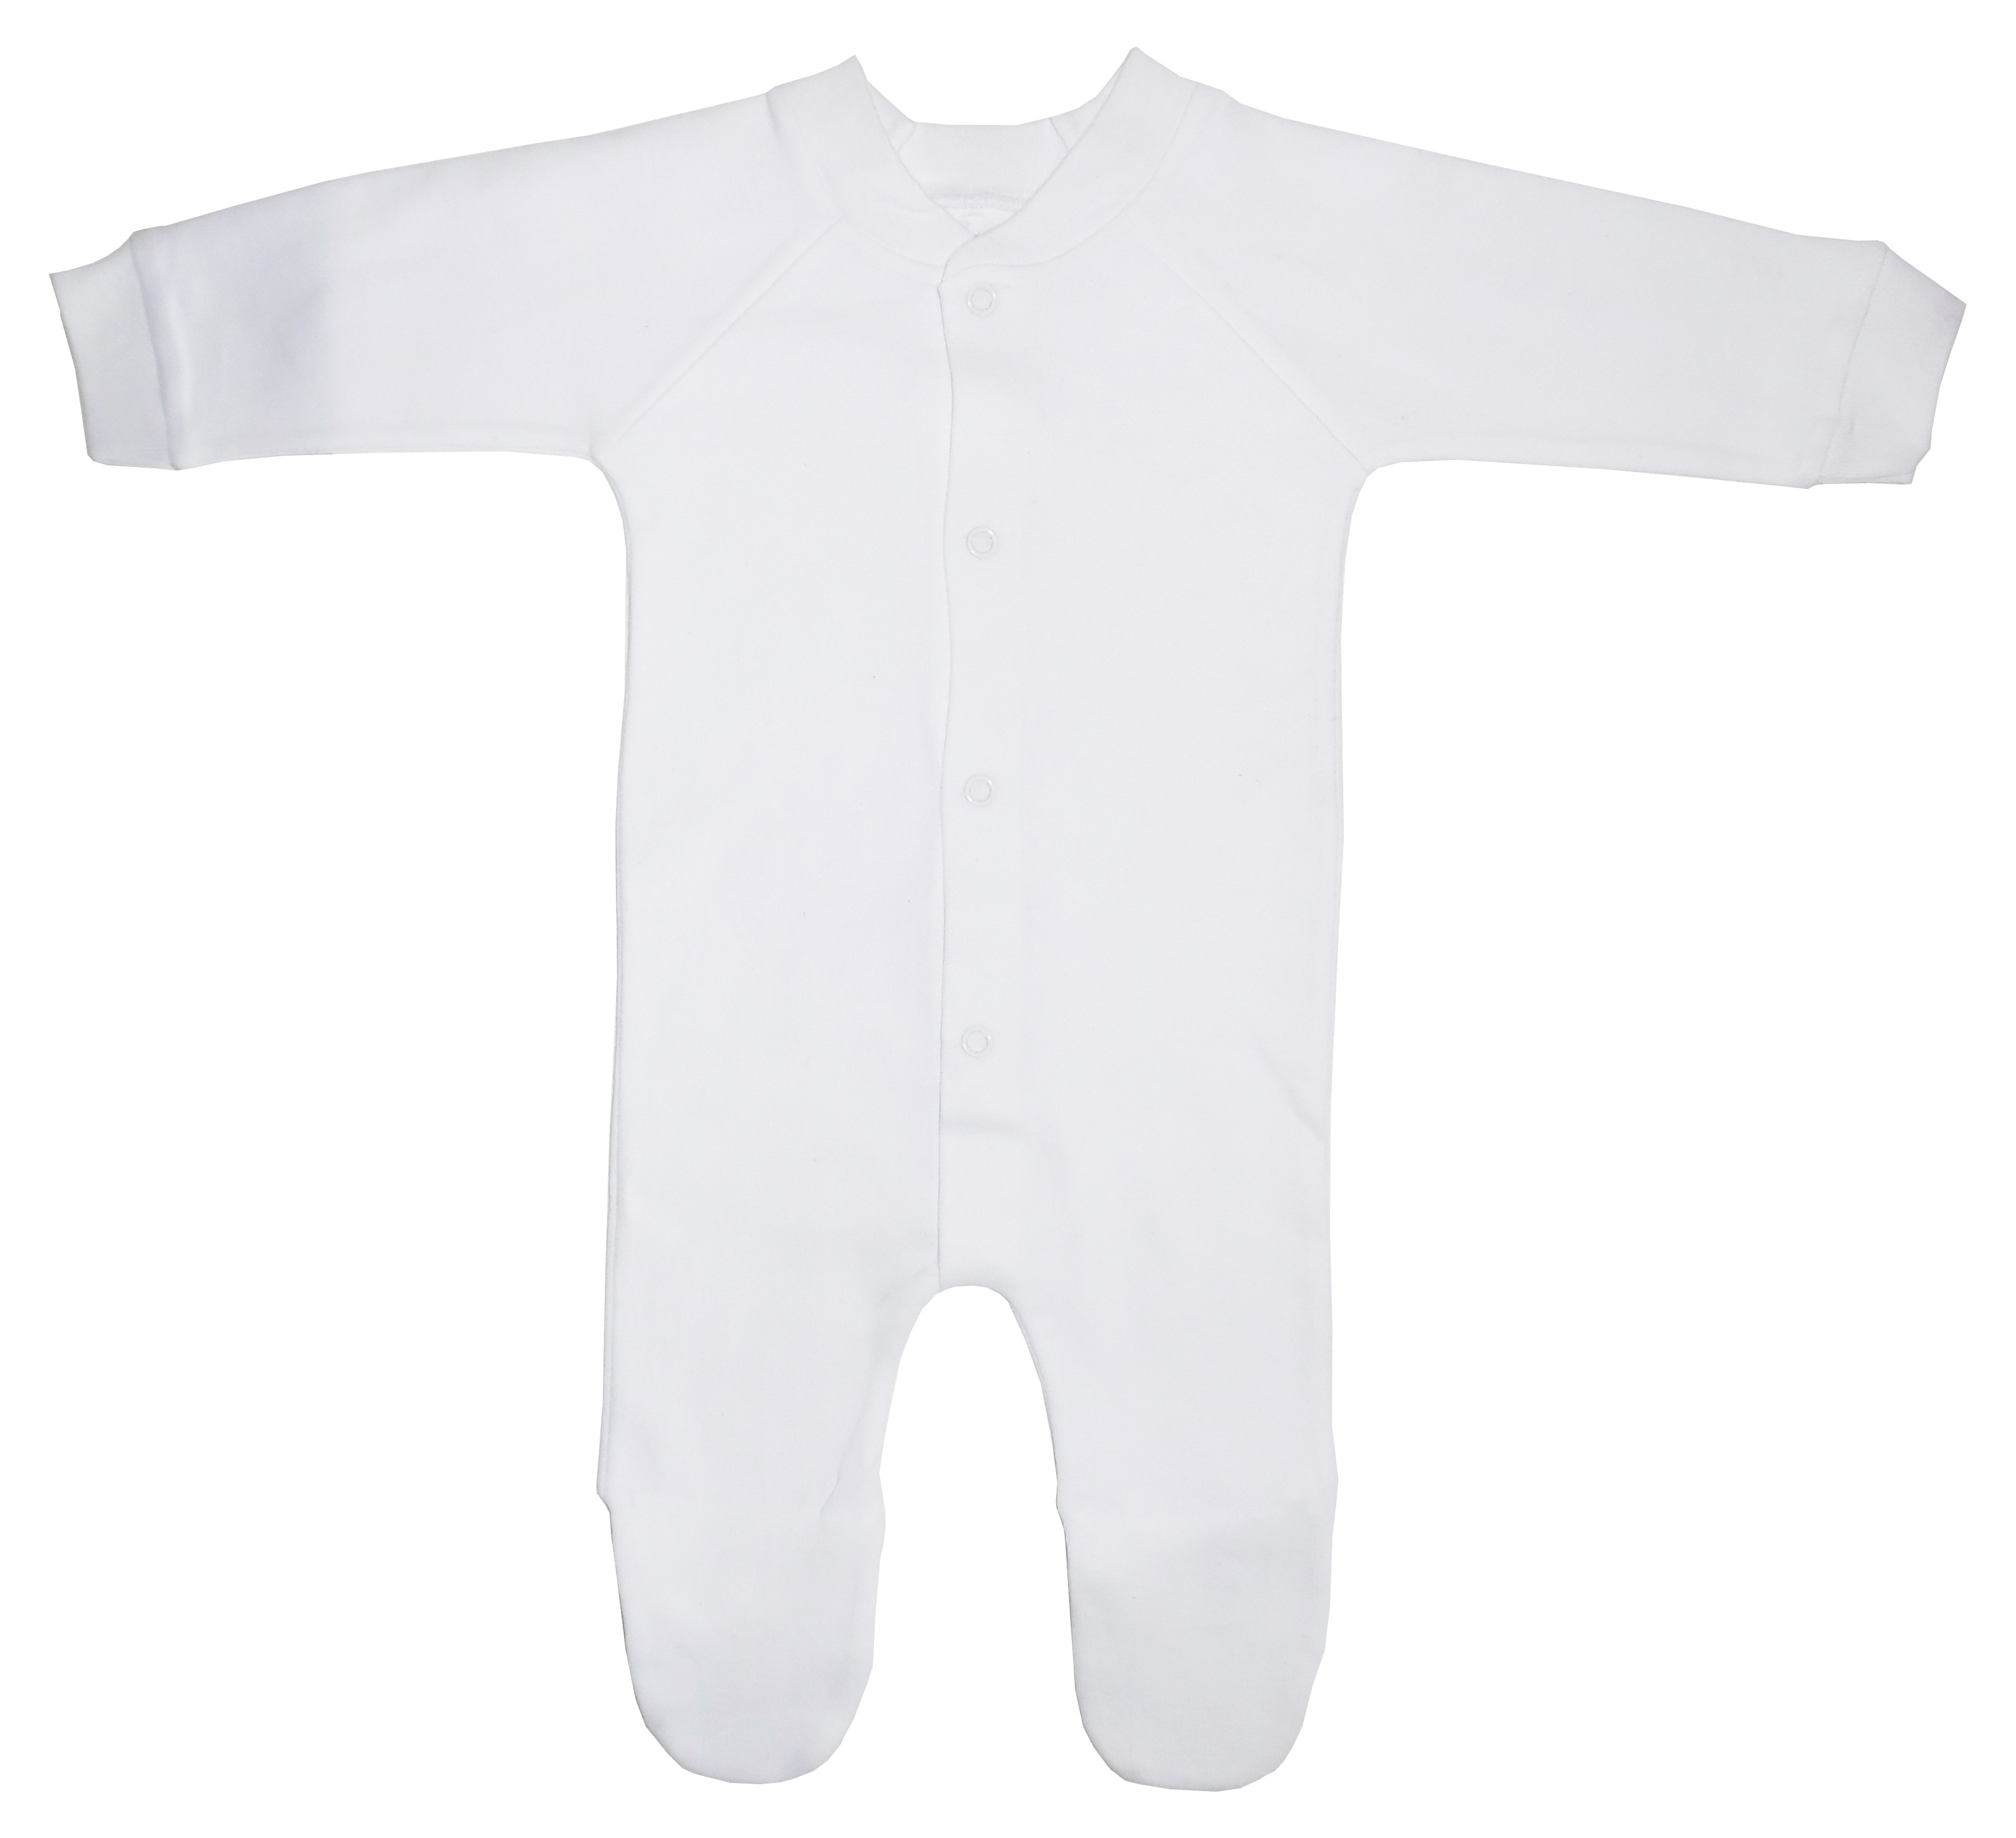 Baby Miracles your online baby clothing store offering everything